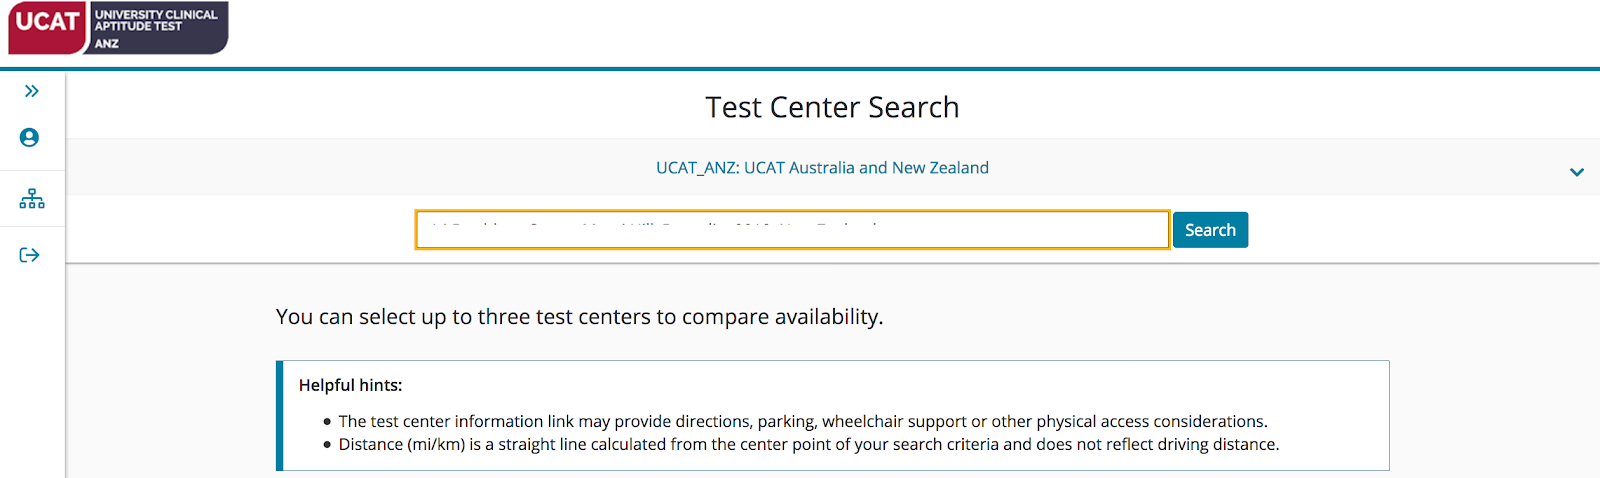 A screenshot showing the Test Center Search page.